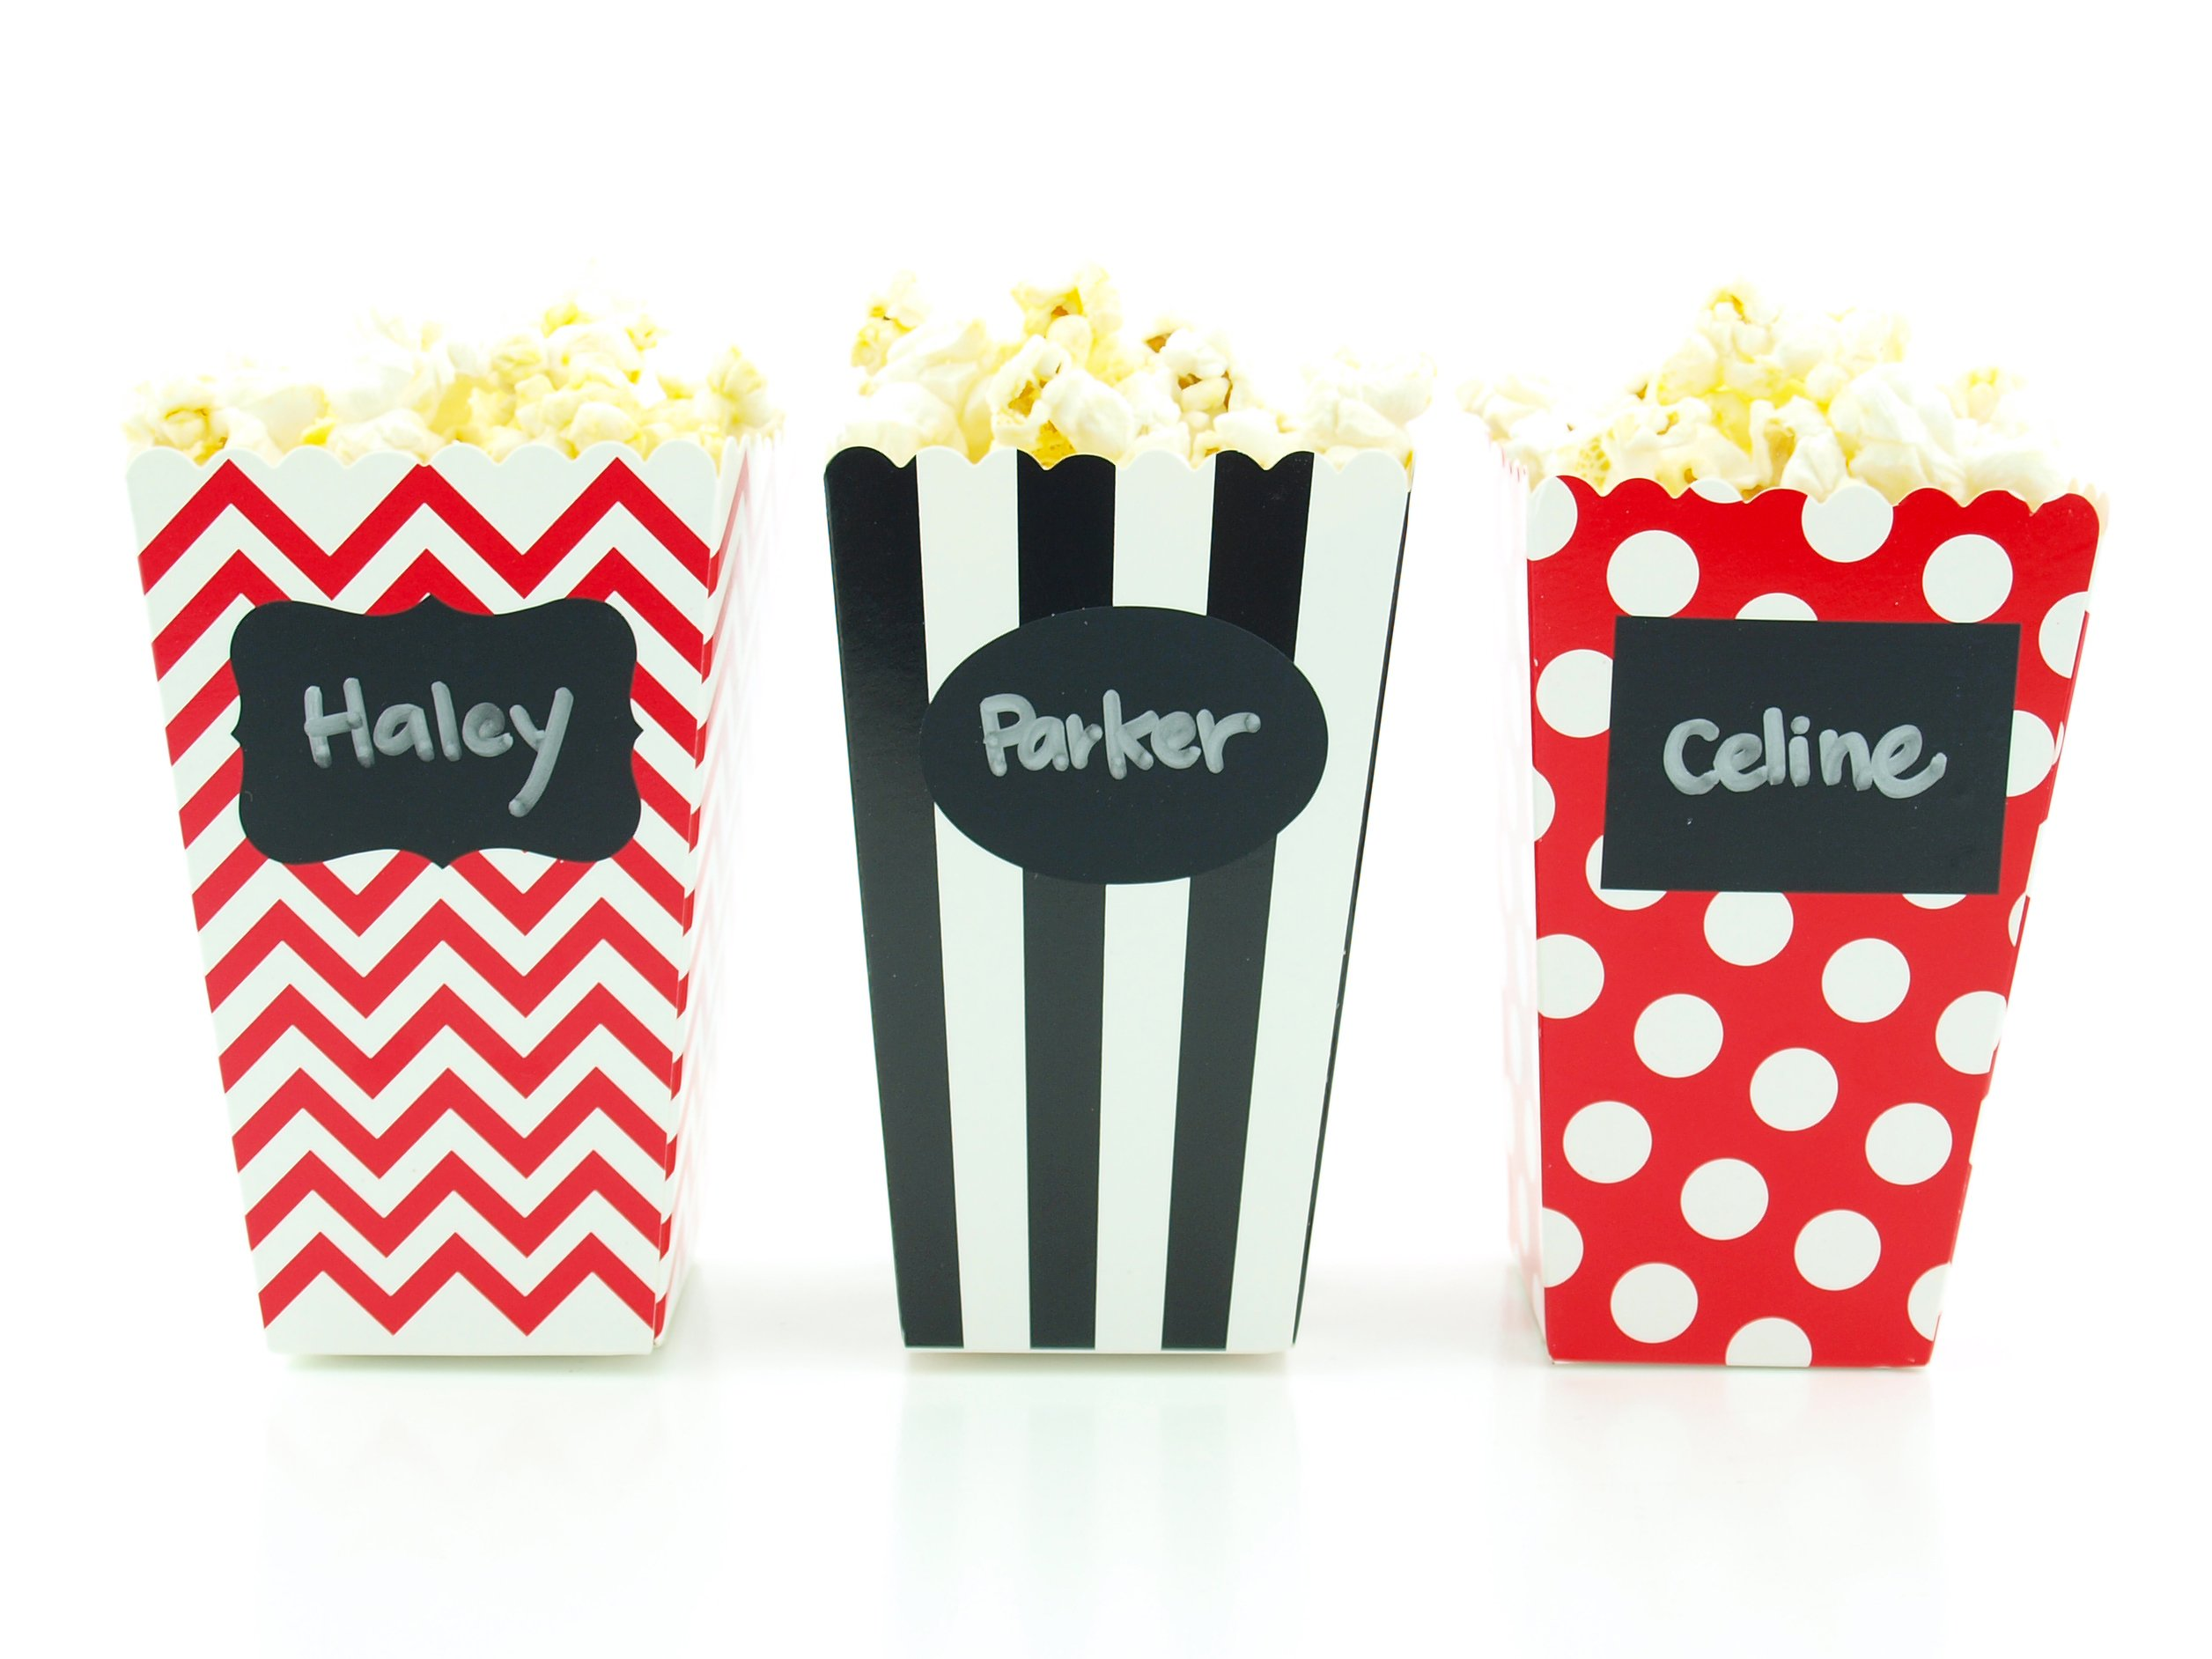 Pirate Party Popcorn Boxes & Black Label Chalkboard Vinyl Stickers (36 Pack) - Skeleton Skull Pirate Party Favors, Miniature Movie Theatre Pirates Popcorn Tubs for Boys Pirate Birthday Party Supplies by Food with Fashion